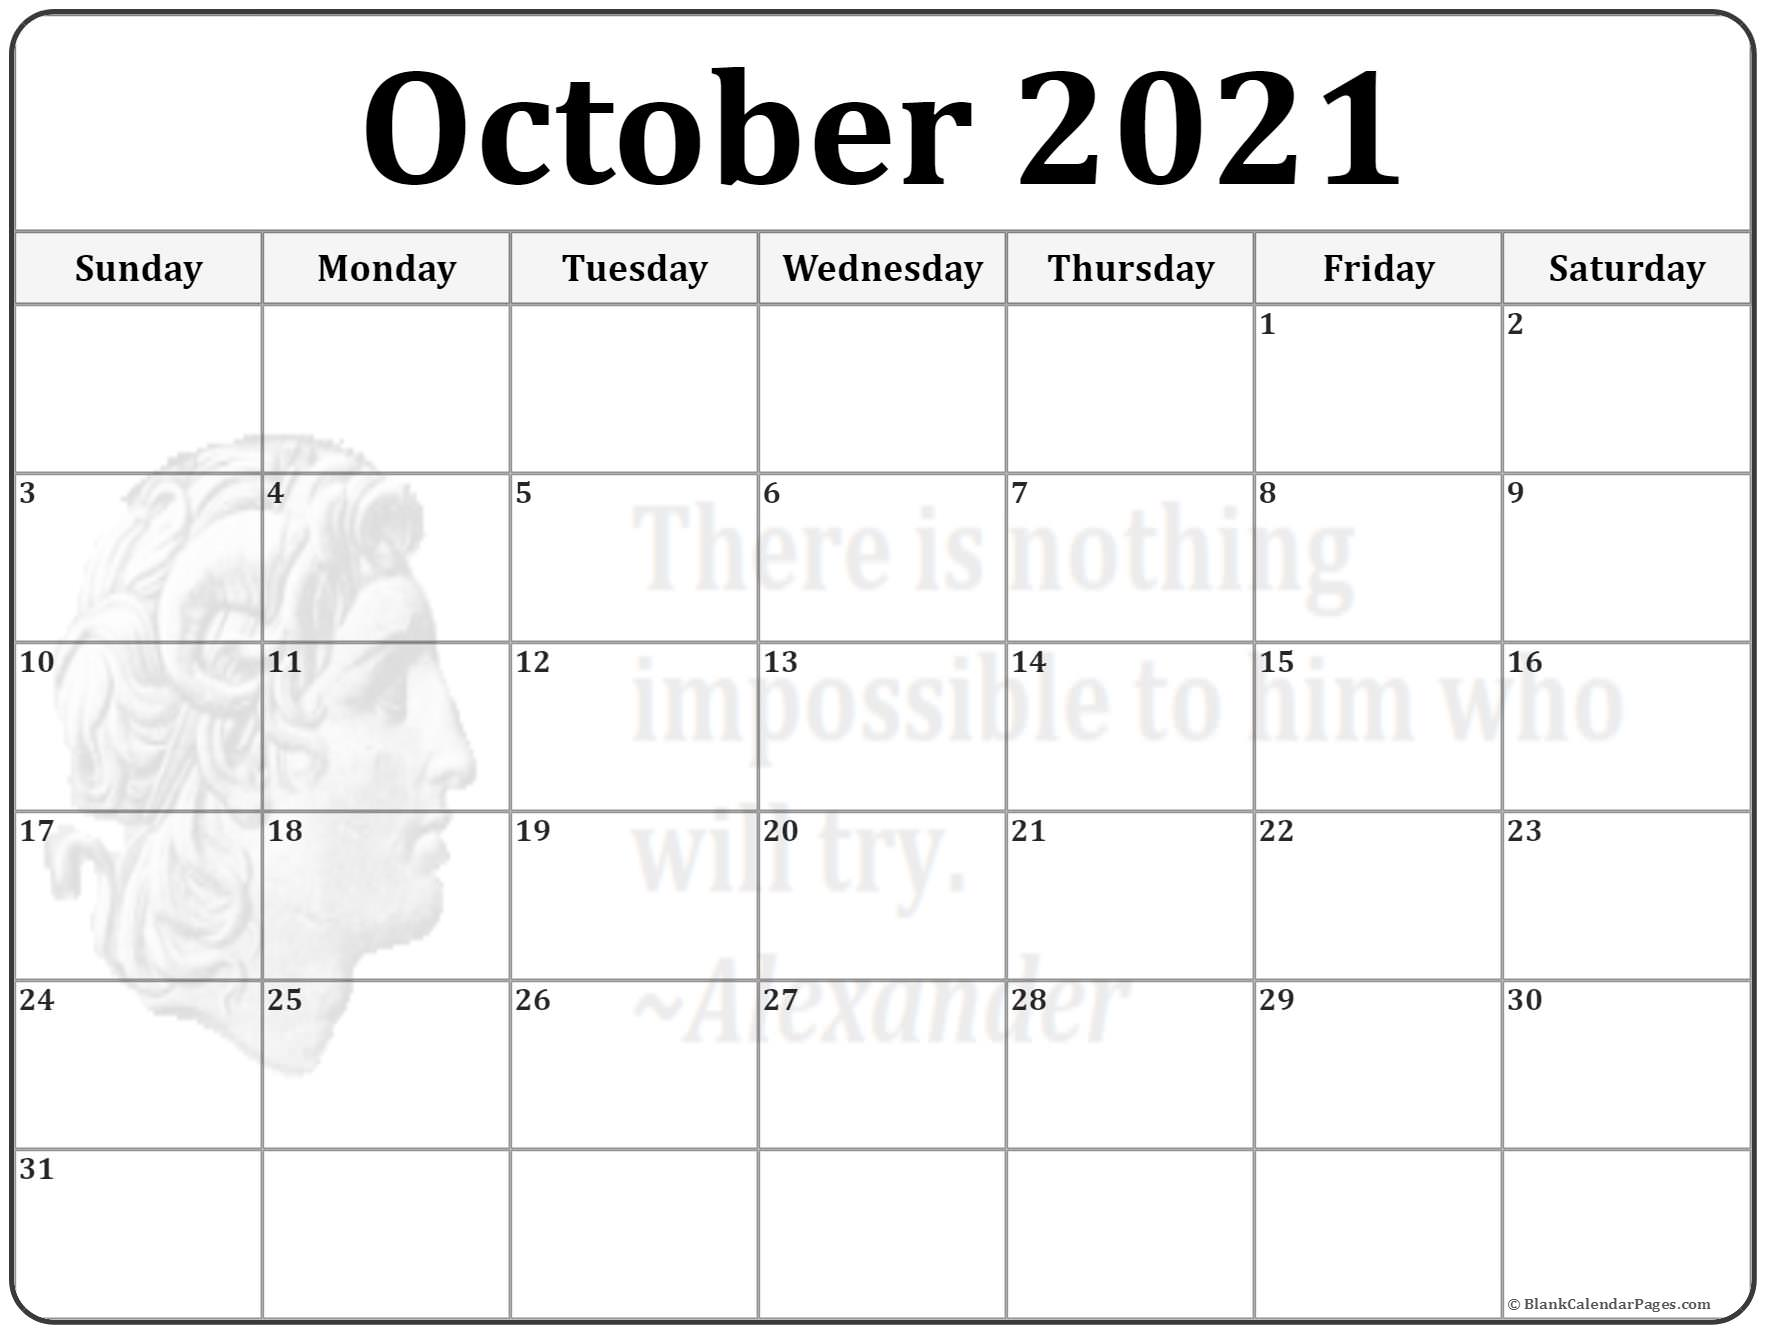 Calendar View Templates : October calendar templates of printable